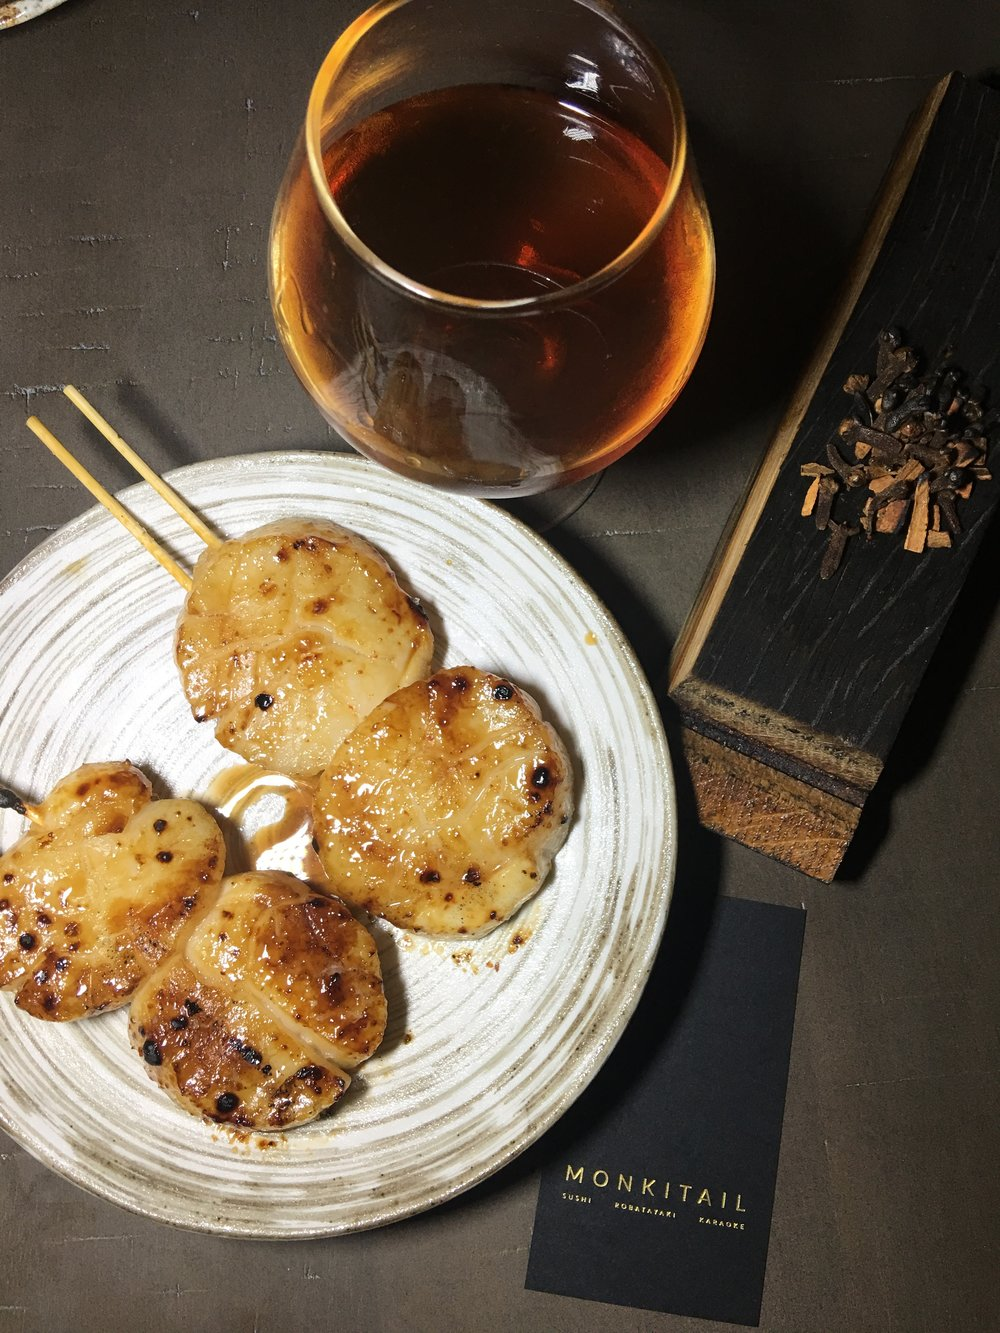 Monkitail Robata Scallops